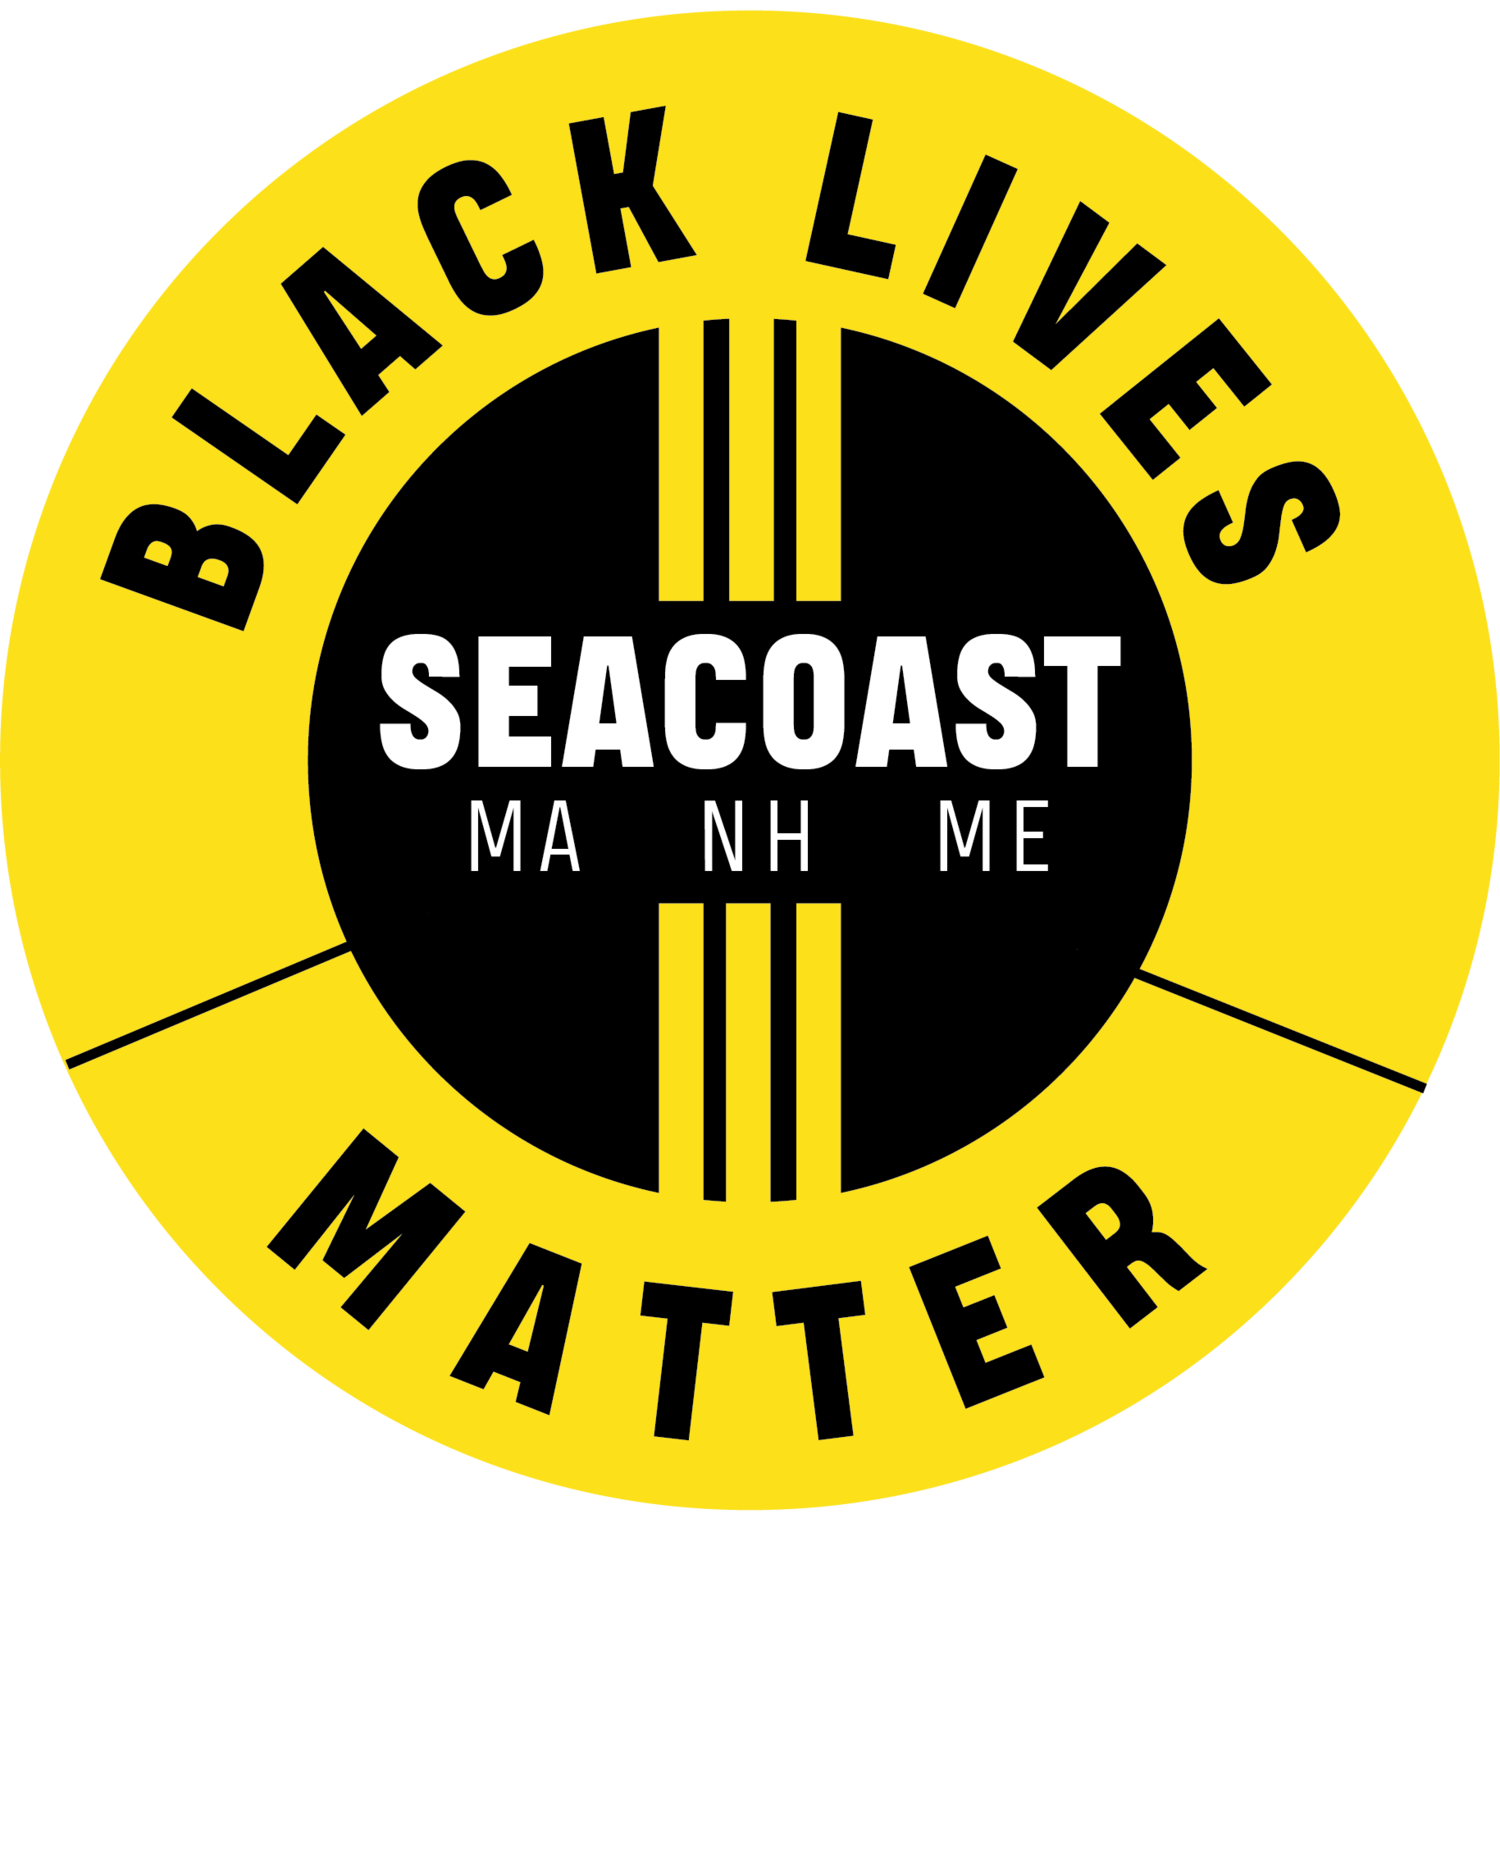 circular logo in yellow with words Black Lives Matter Seacoast